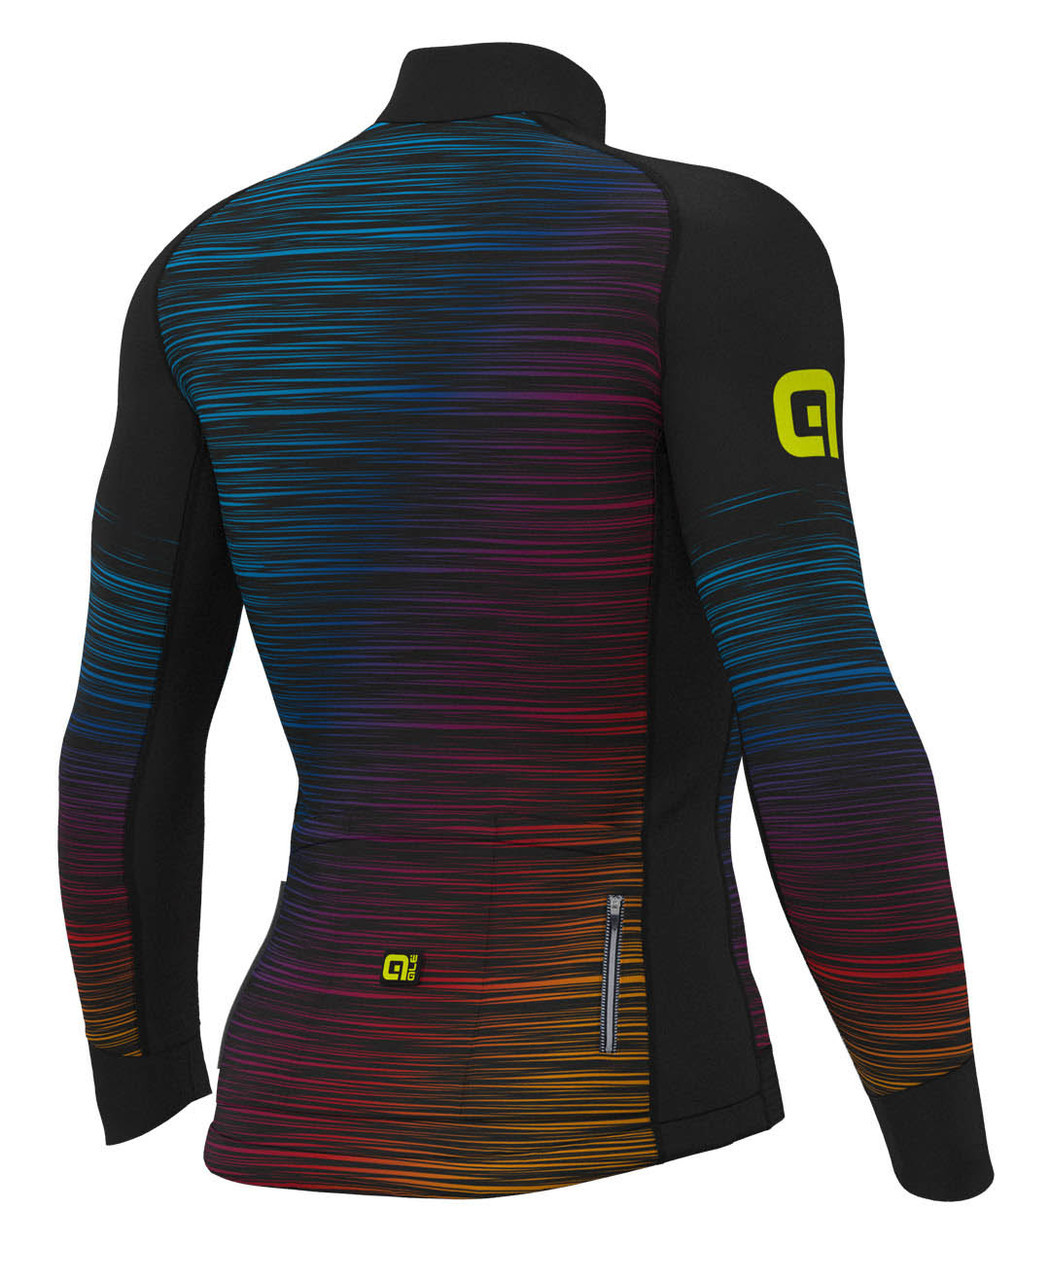 ALE' The End PRR Black Yellow Long Sleeve Jersey Rear